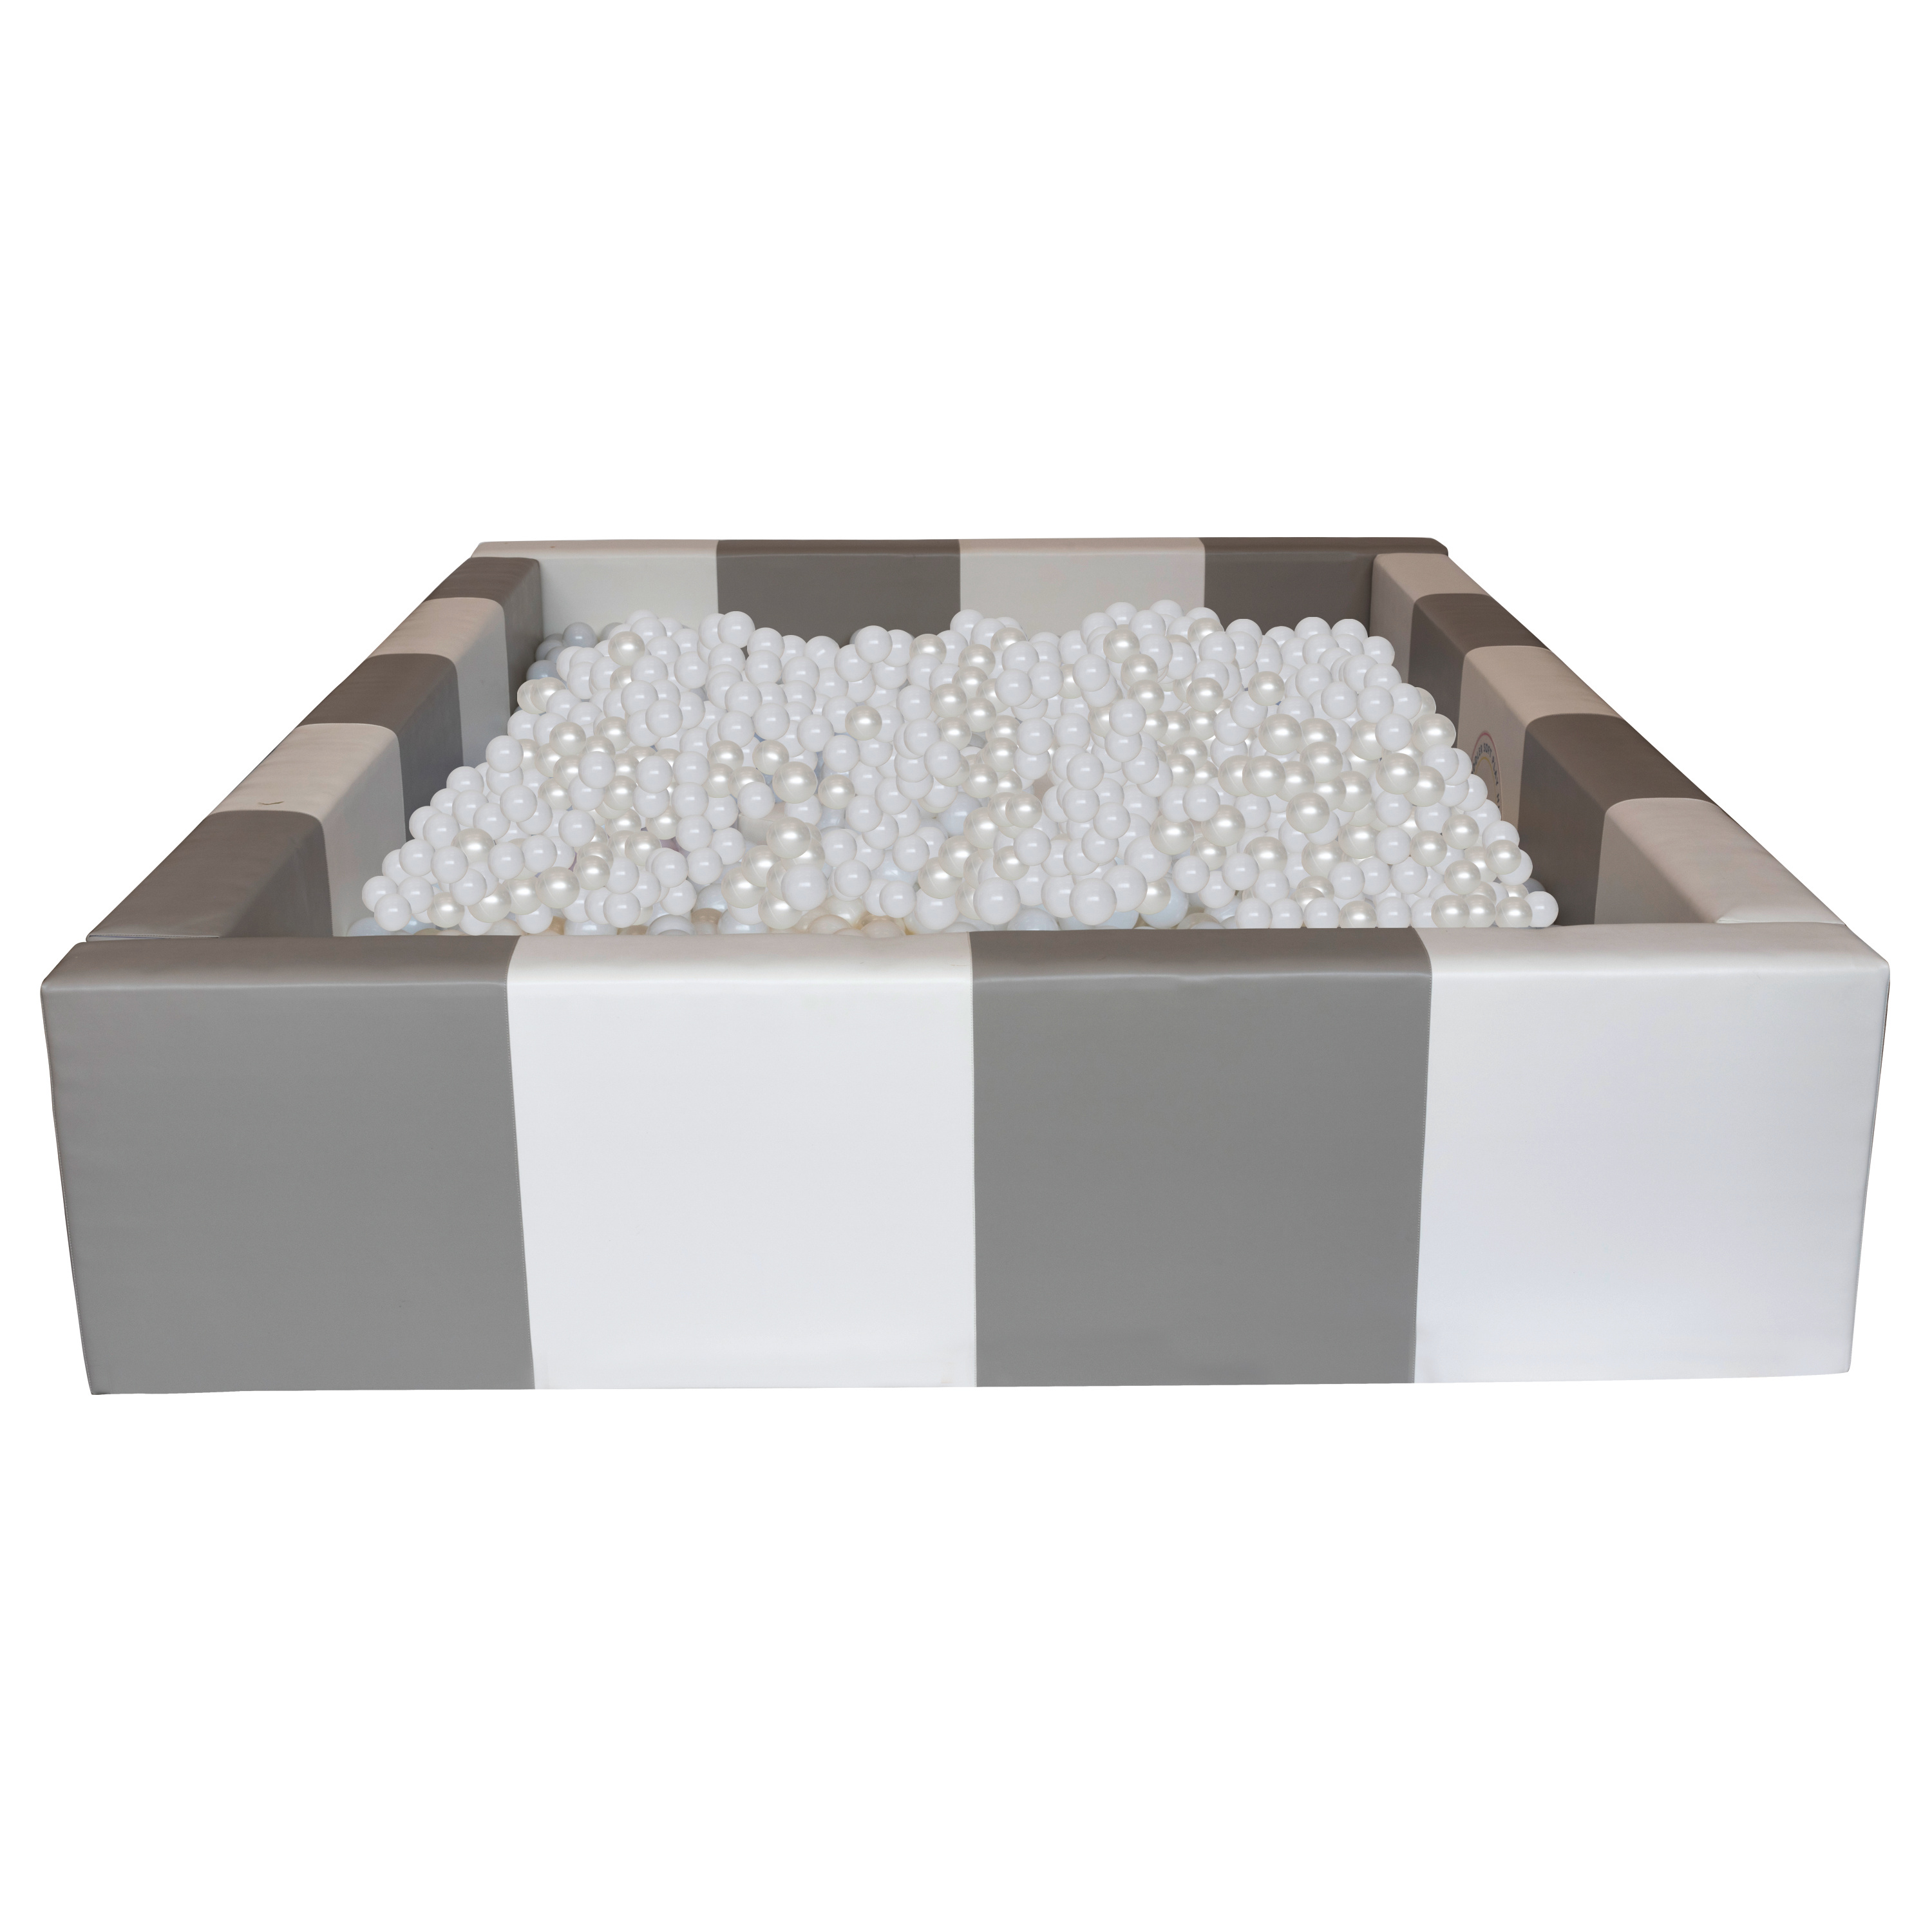 Grey & White Rectangle Ball Pool 6ft